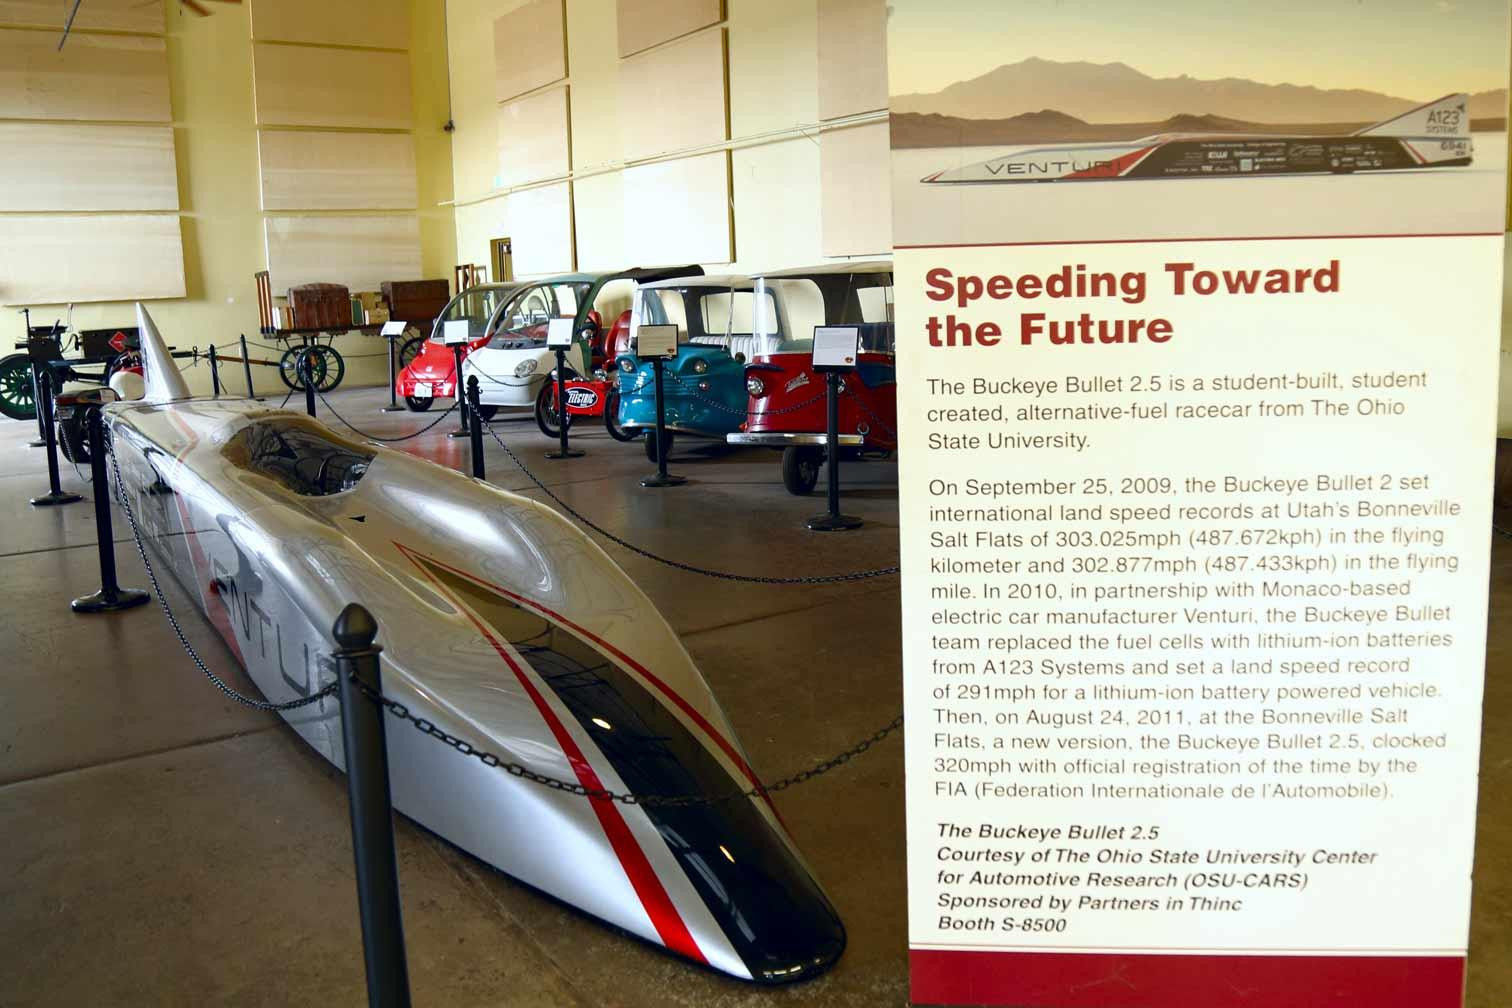 World's Fastest Electric Car in Kingman, AZ